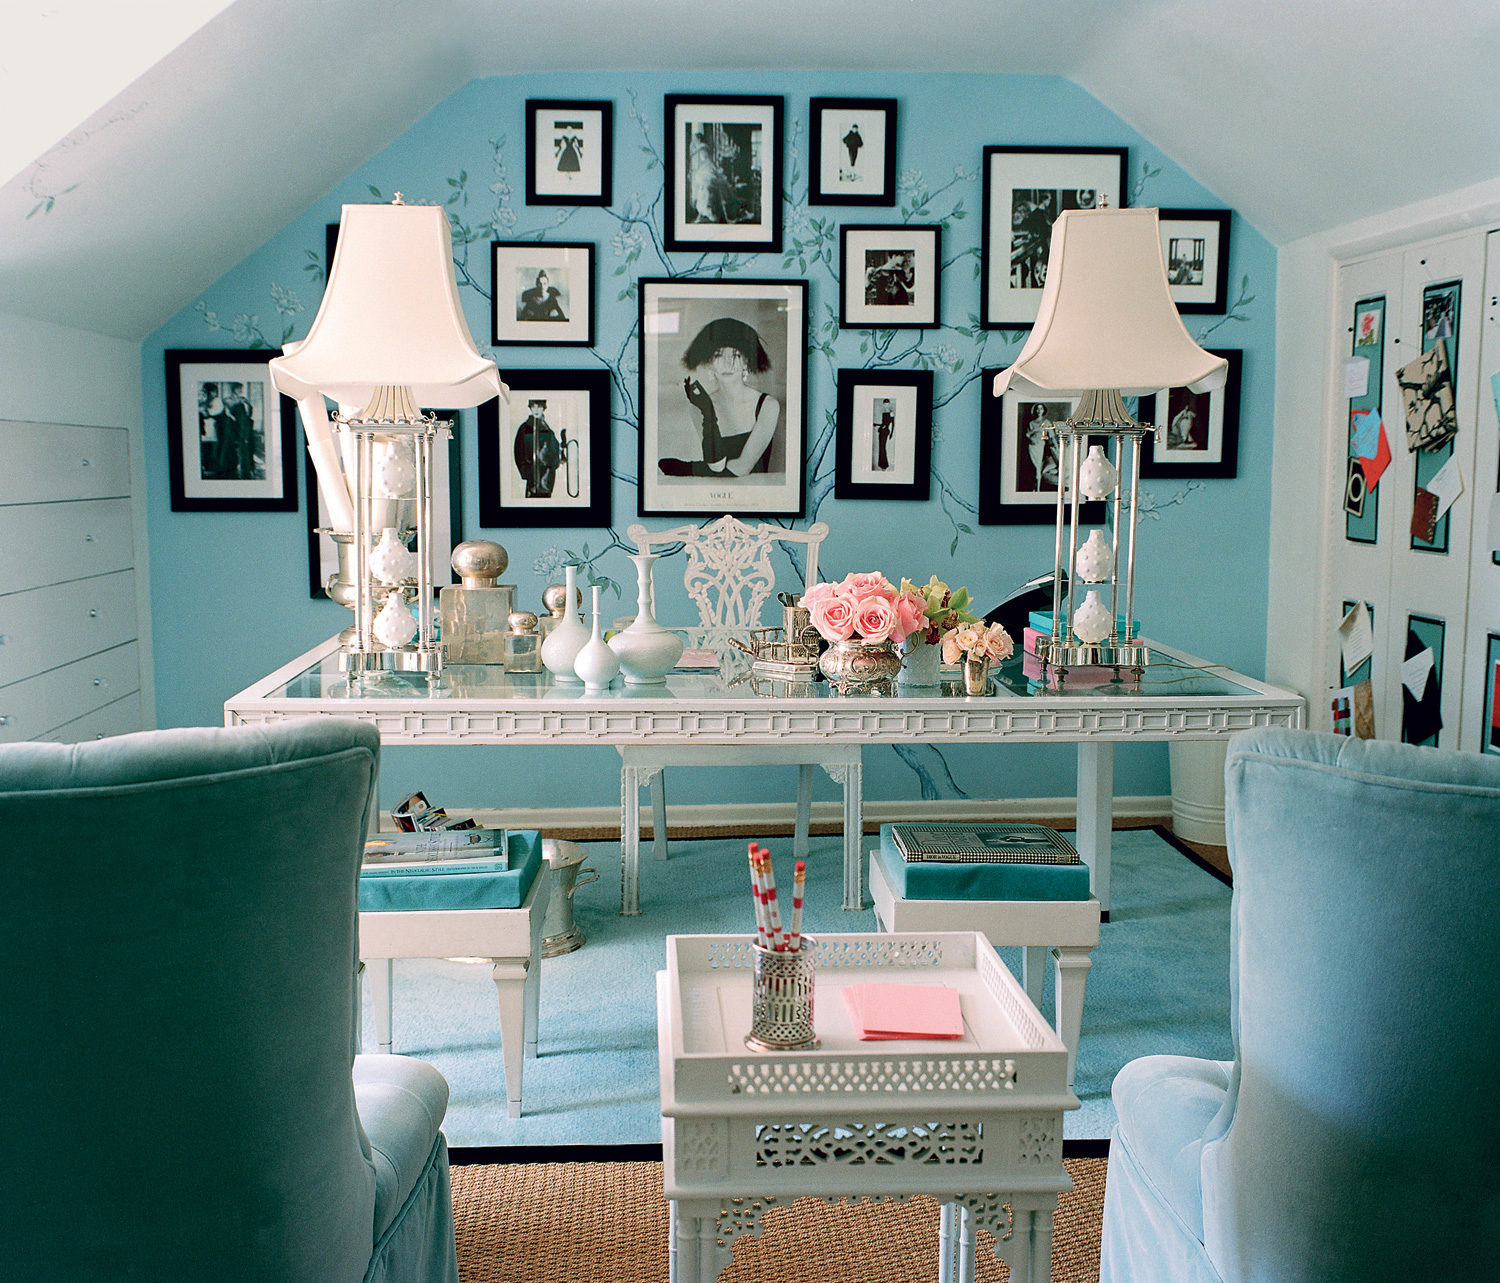 21 Feminine Home Office Designs Decorating Ideas: Belle Maison: Book Review: Mary McDonald: Interiors